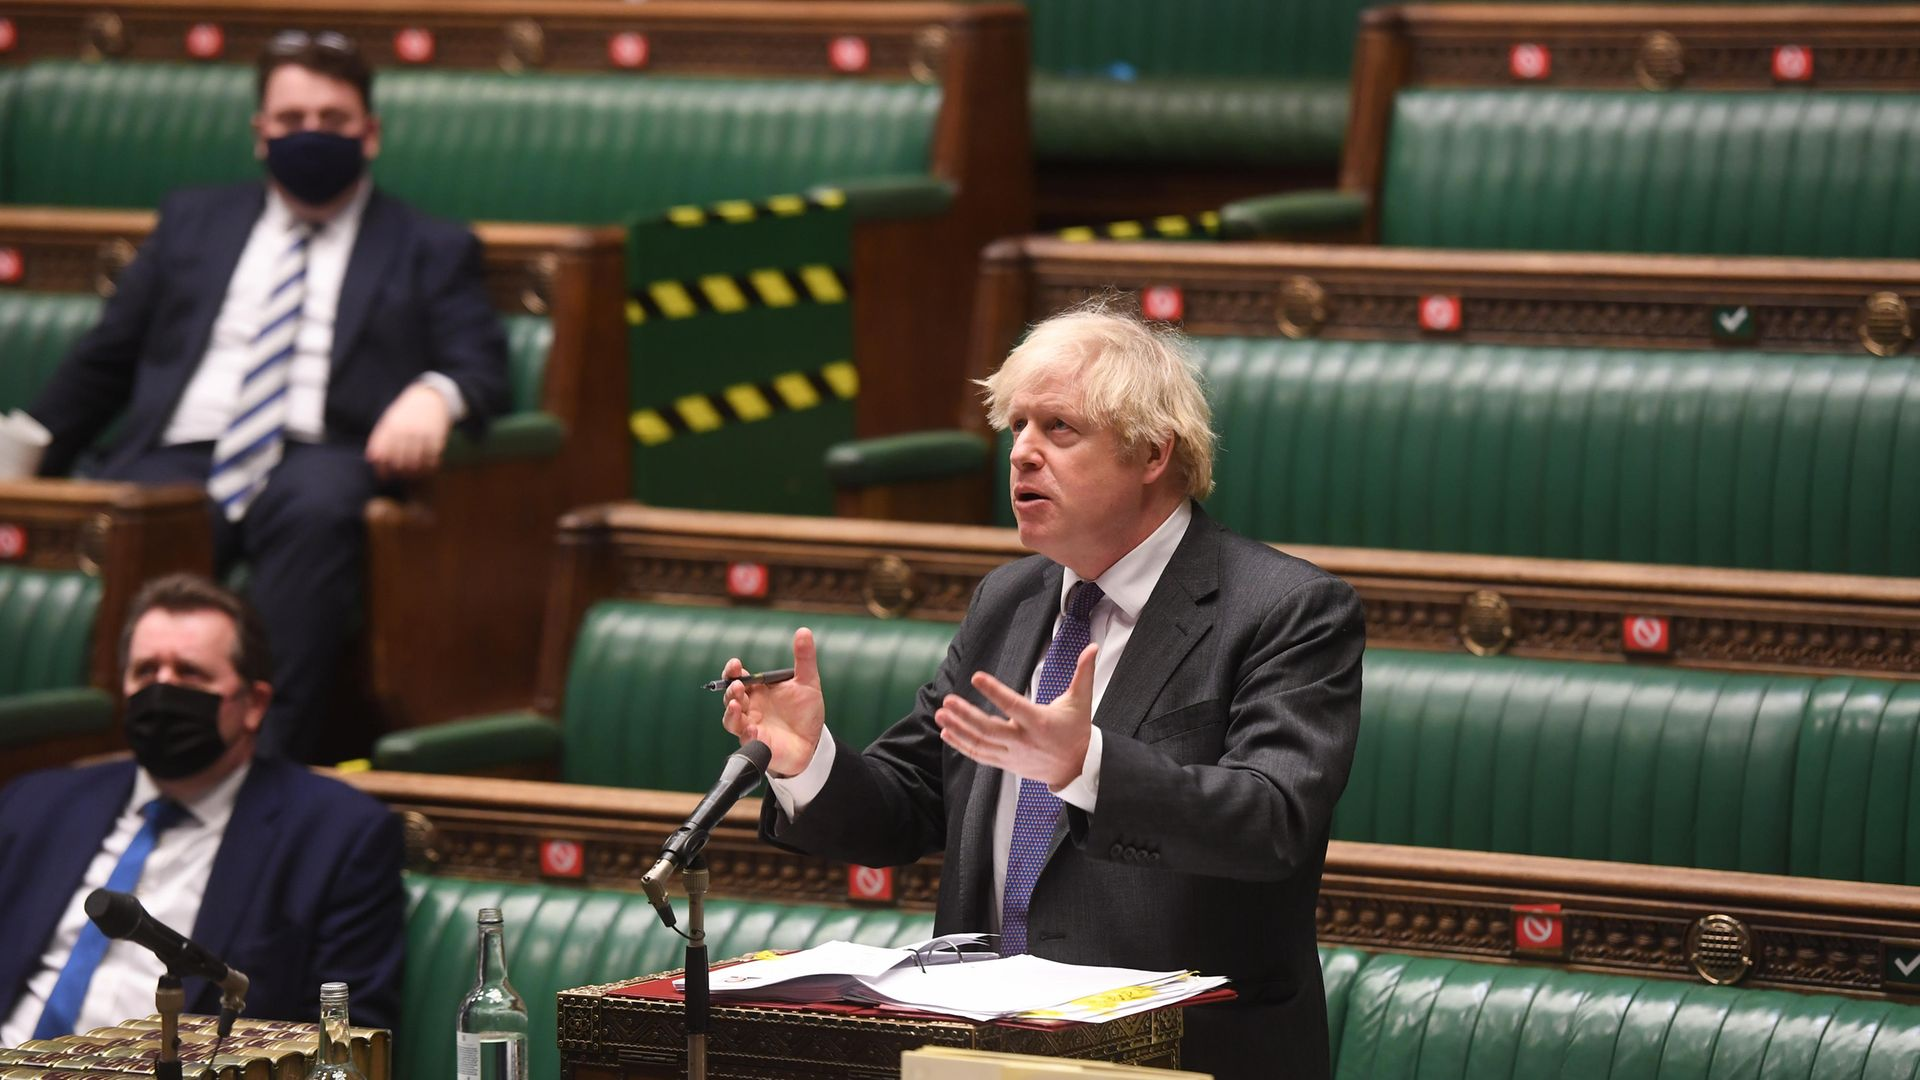 Prime Minister Boris Johnson during Prime Minister's Questions in the House of Commons, London - Credit: PA